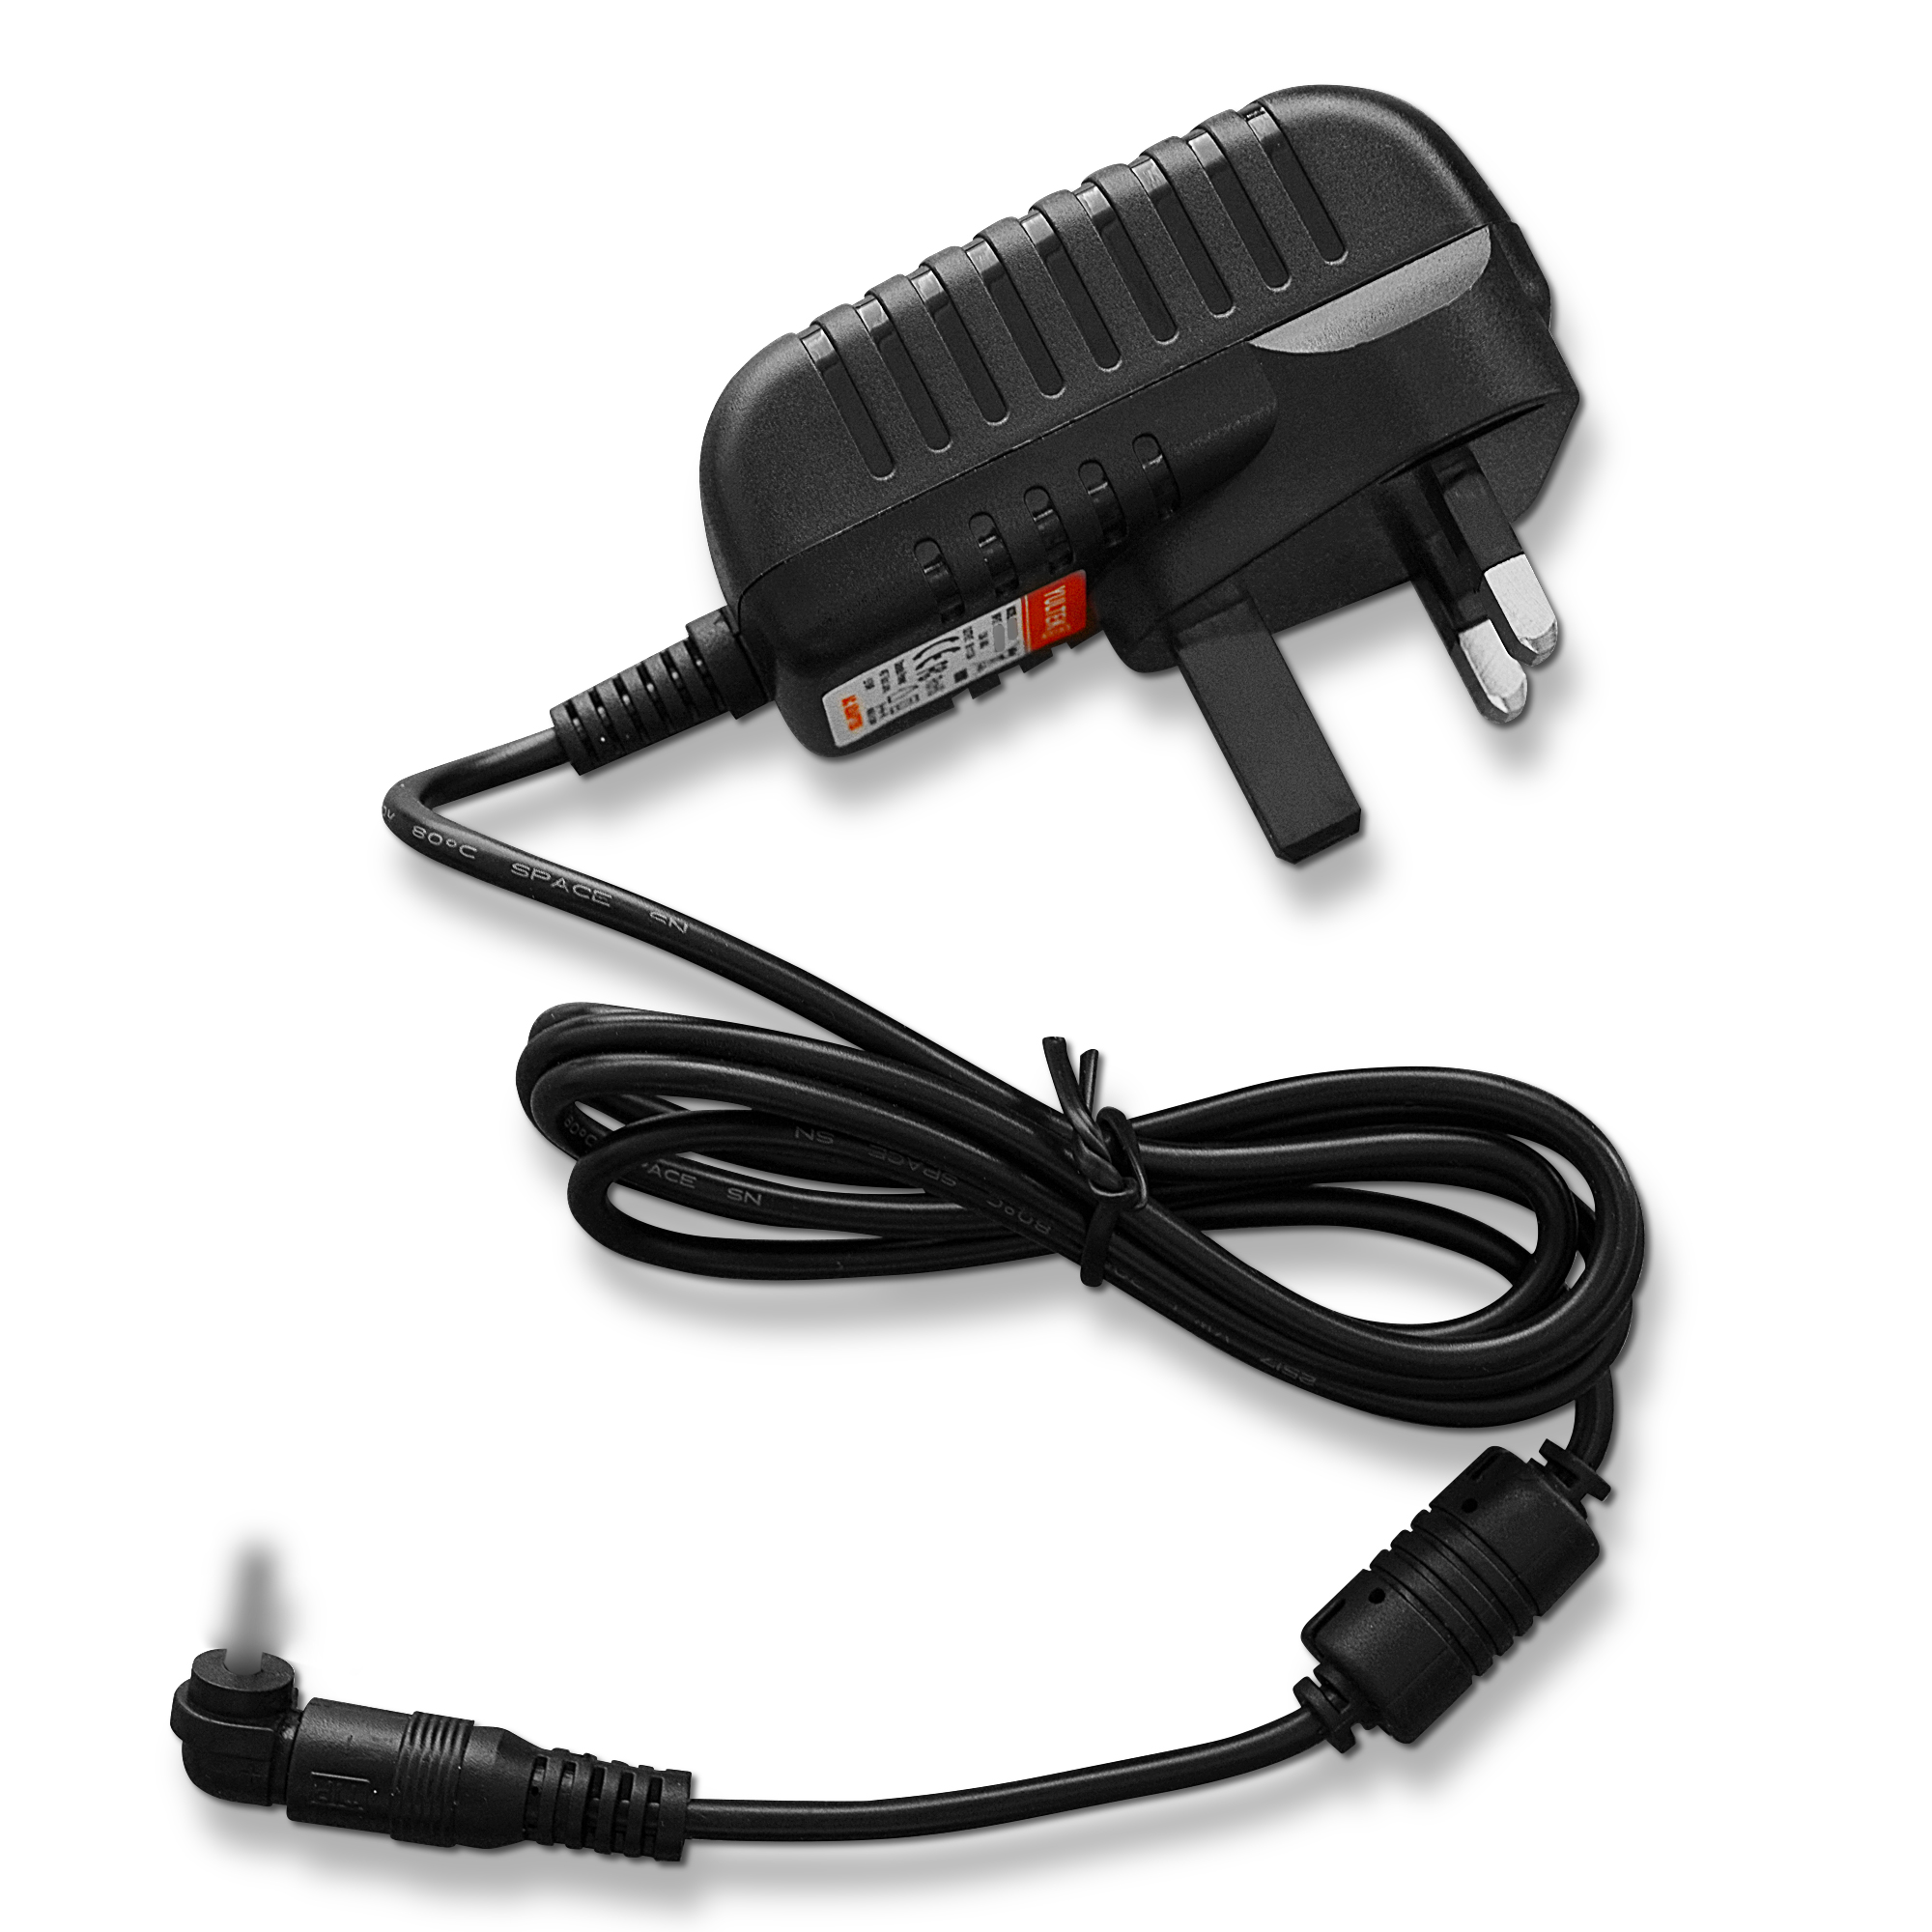 REPLACEMENT 9V AC-DC Adaptor Charger for Home-Tek HT818 Carpet ...